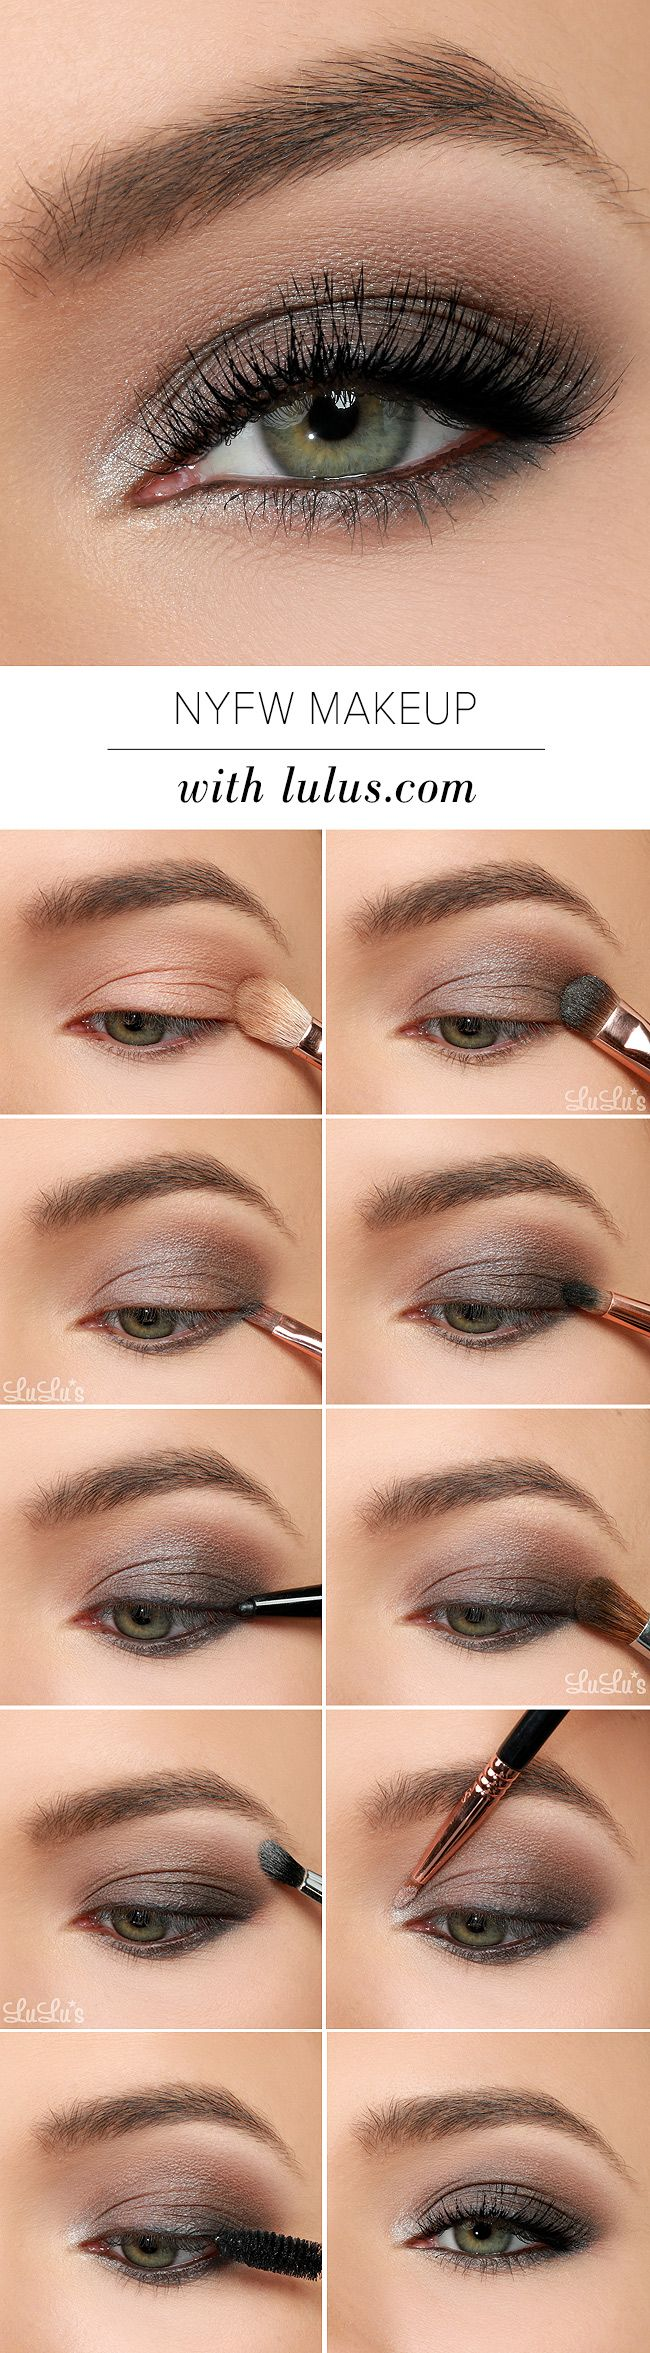 Lulus How-To: 2015 NYFW Inspired Eye Shadow Tutorial - Lulus.com Fashion Blog